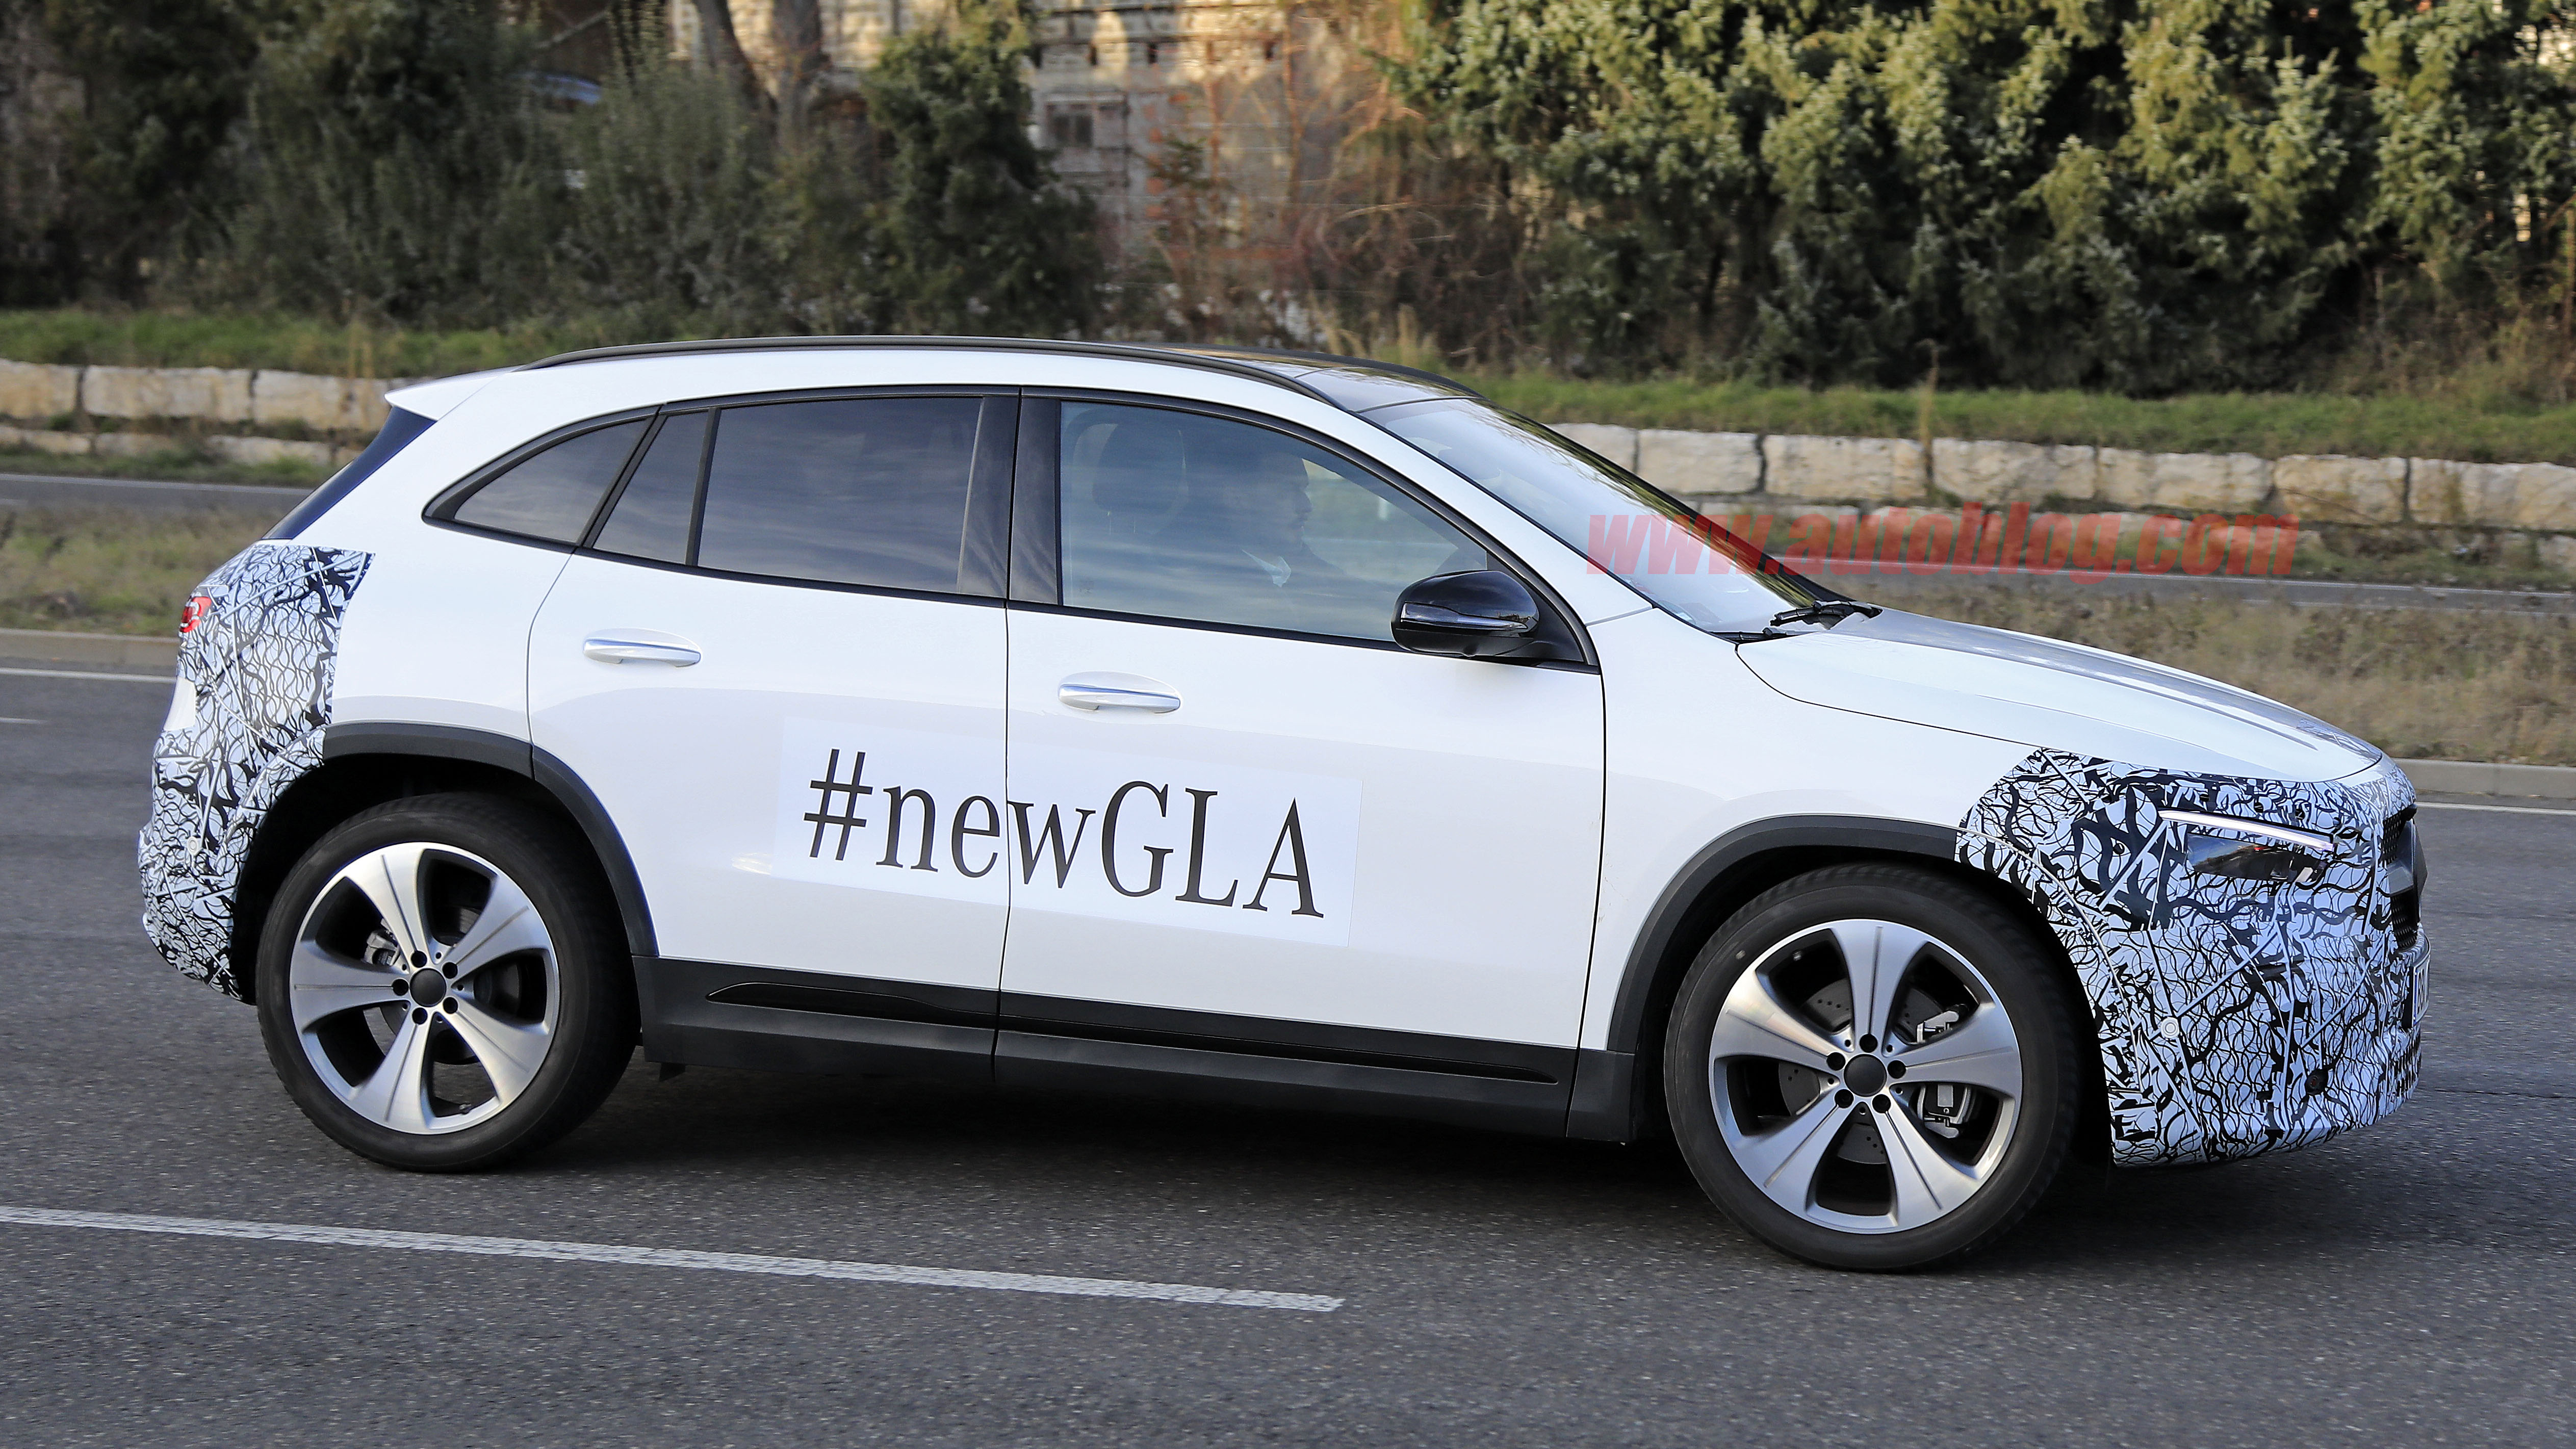 Mercedes Pre Owned >> 2021 Mercedes-Benz GLA-Class, electric EQA spied | Autoblog